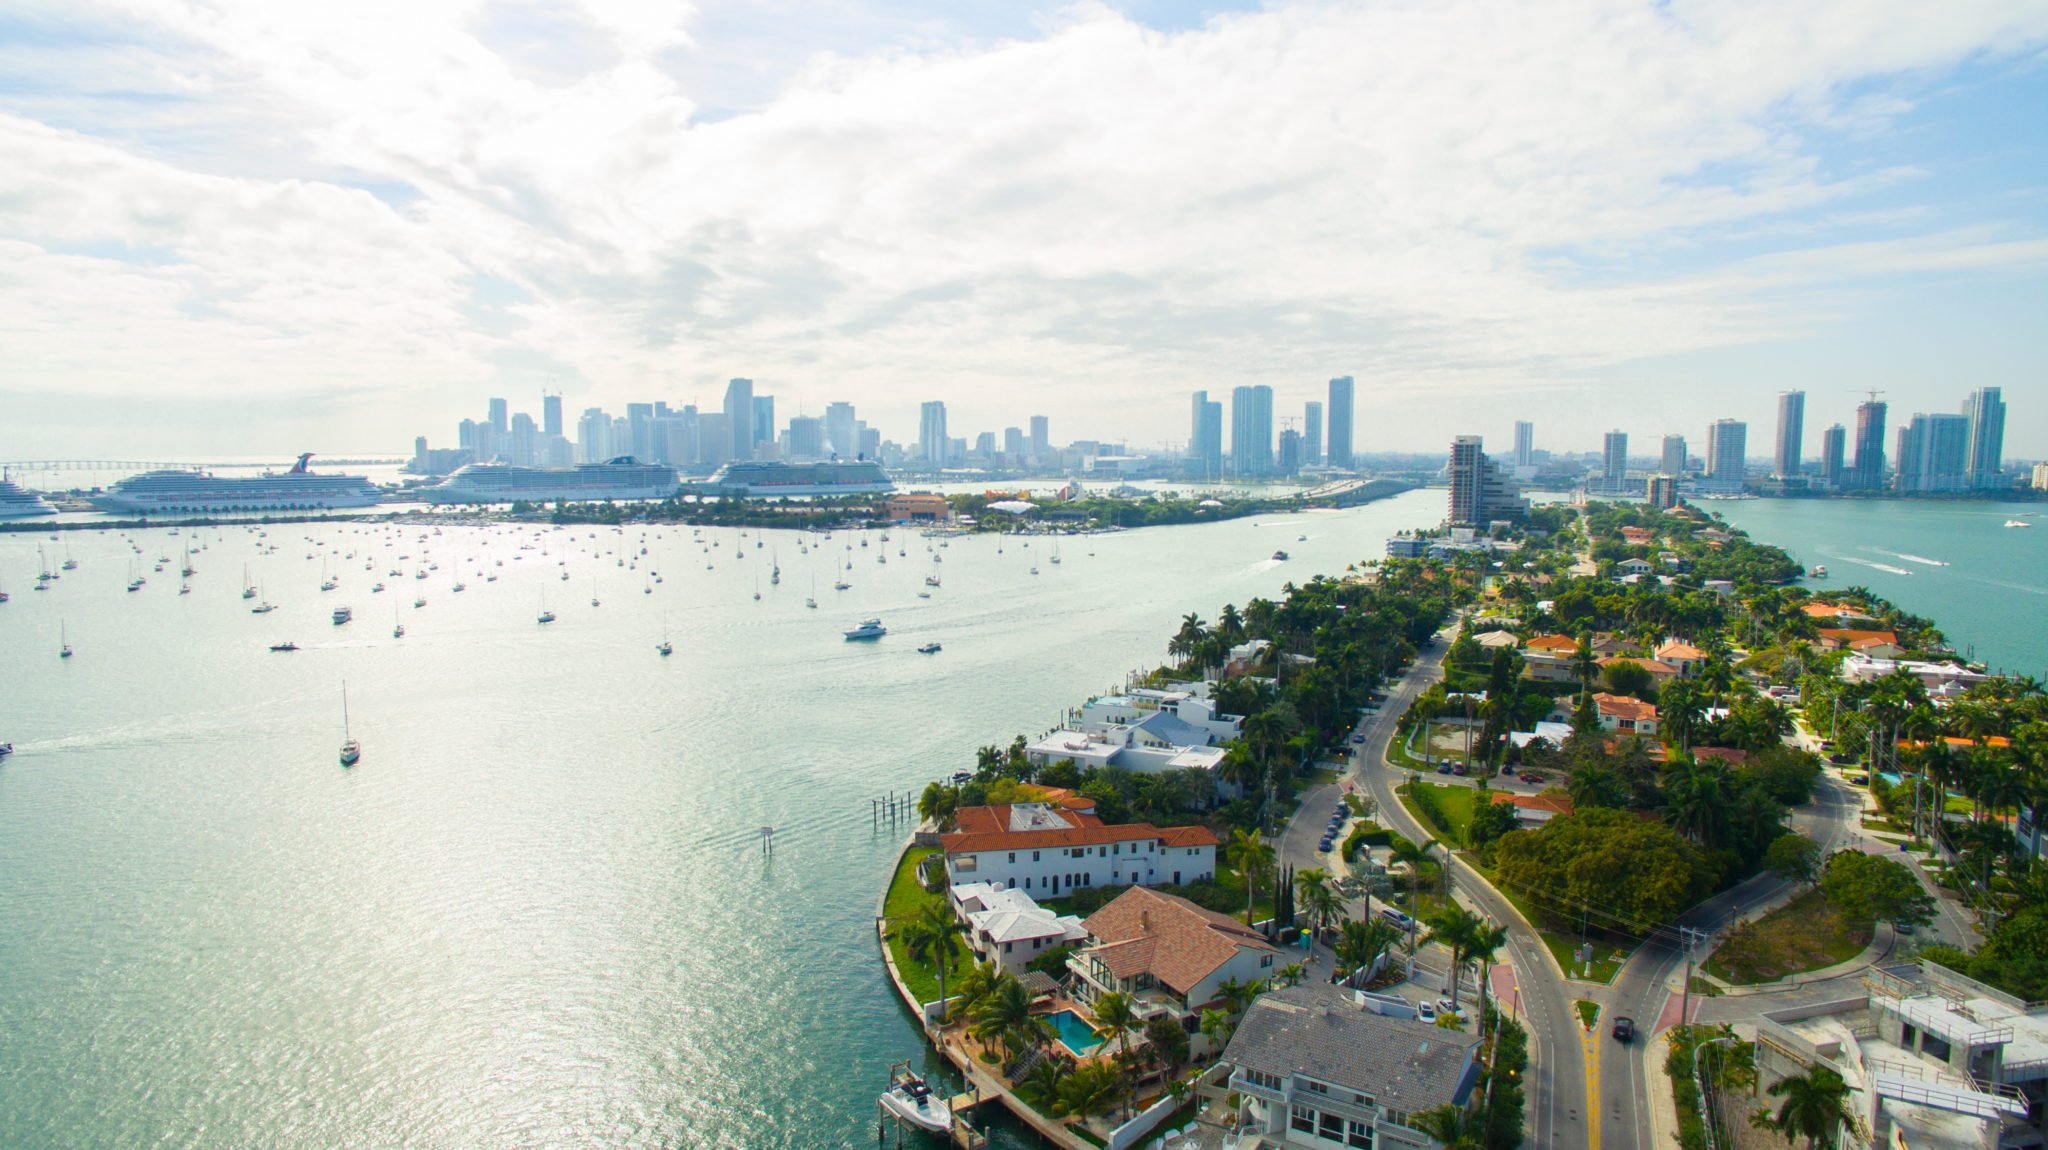 Venetian Islands Miami Beach - Julian Johnston